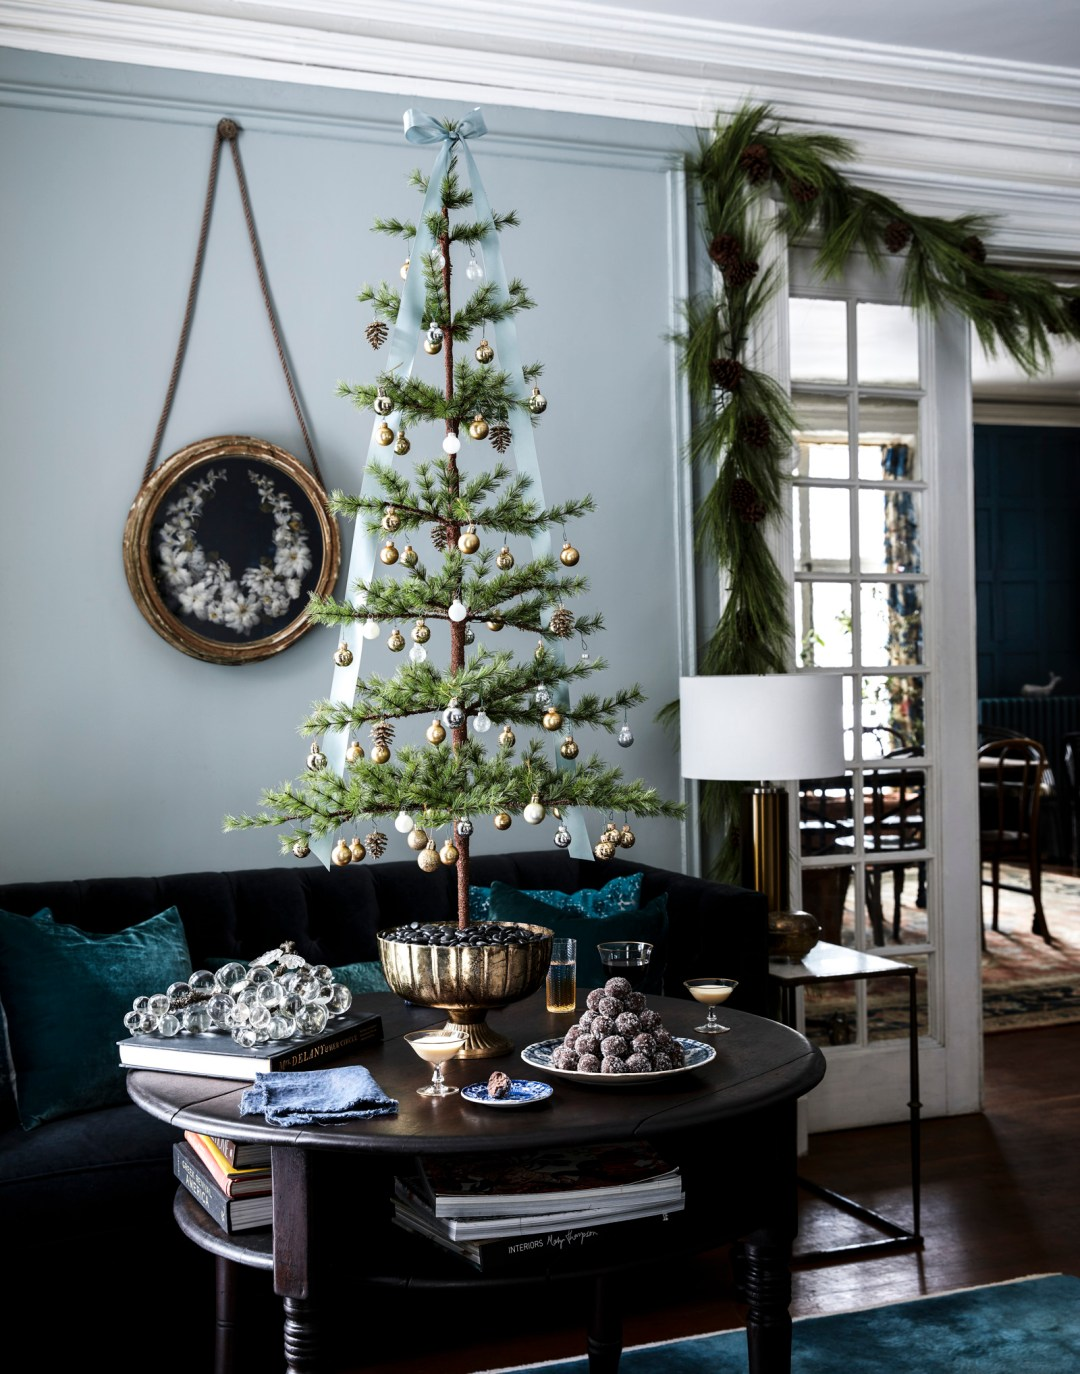 10 Gorgeous Christmas Trees from Fellow Design Bloggers - roomfortuesday.com